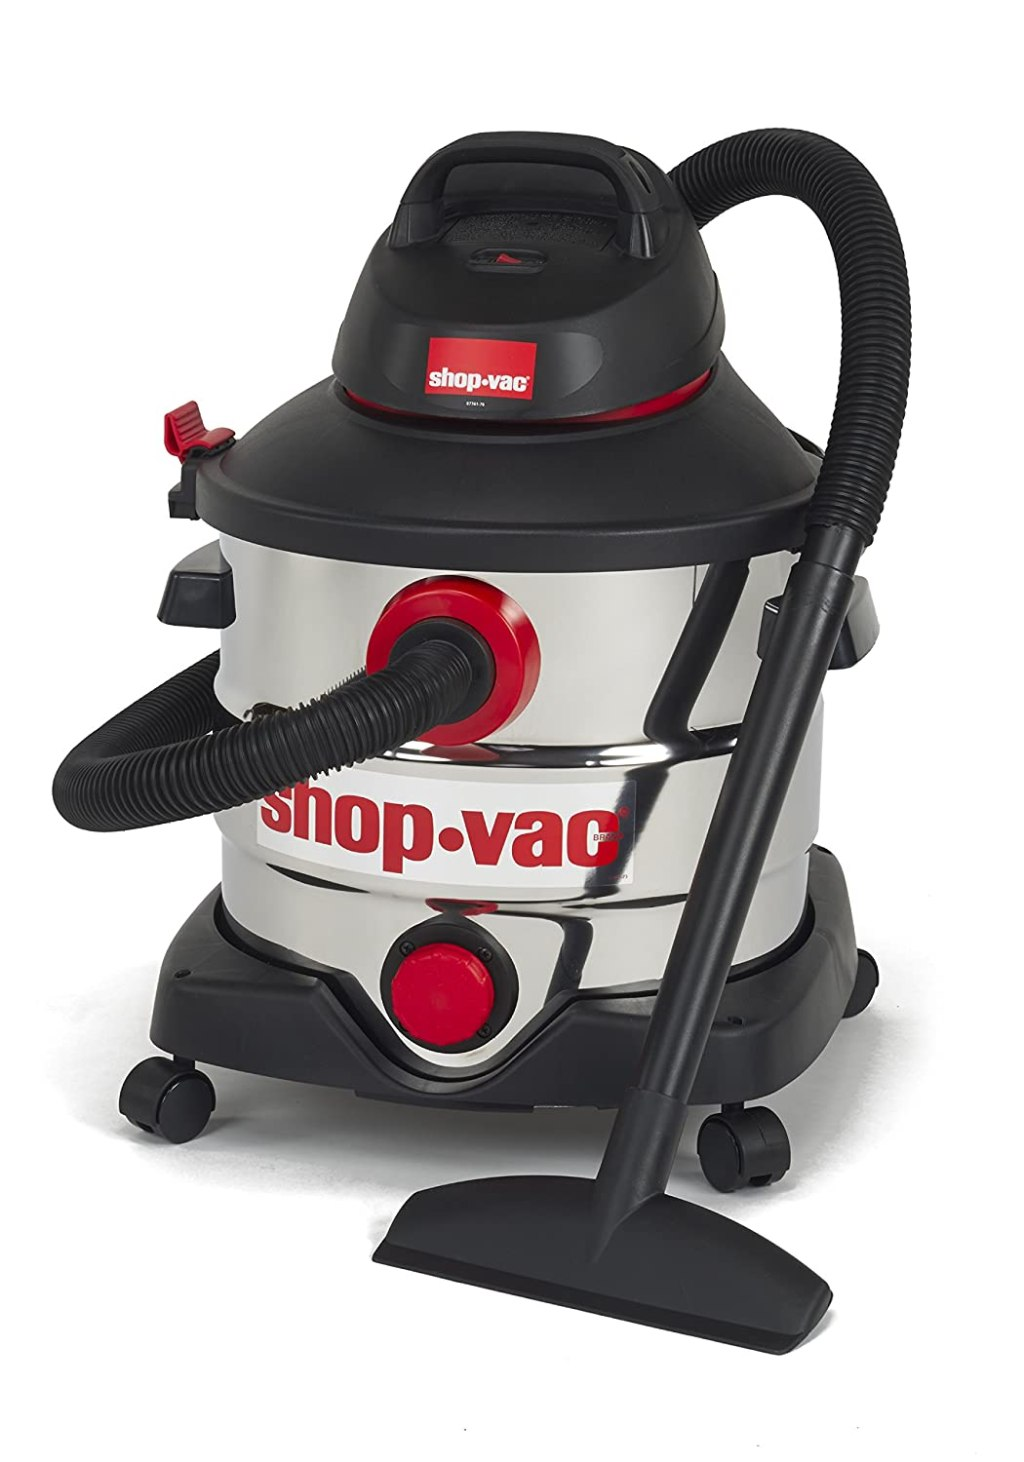 Shop-Vac 5989400 Review